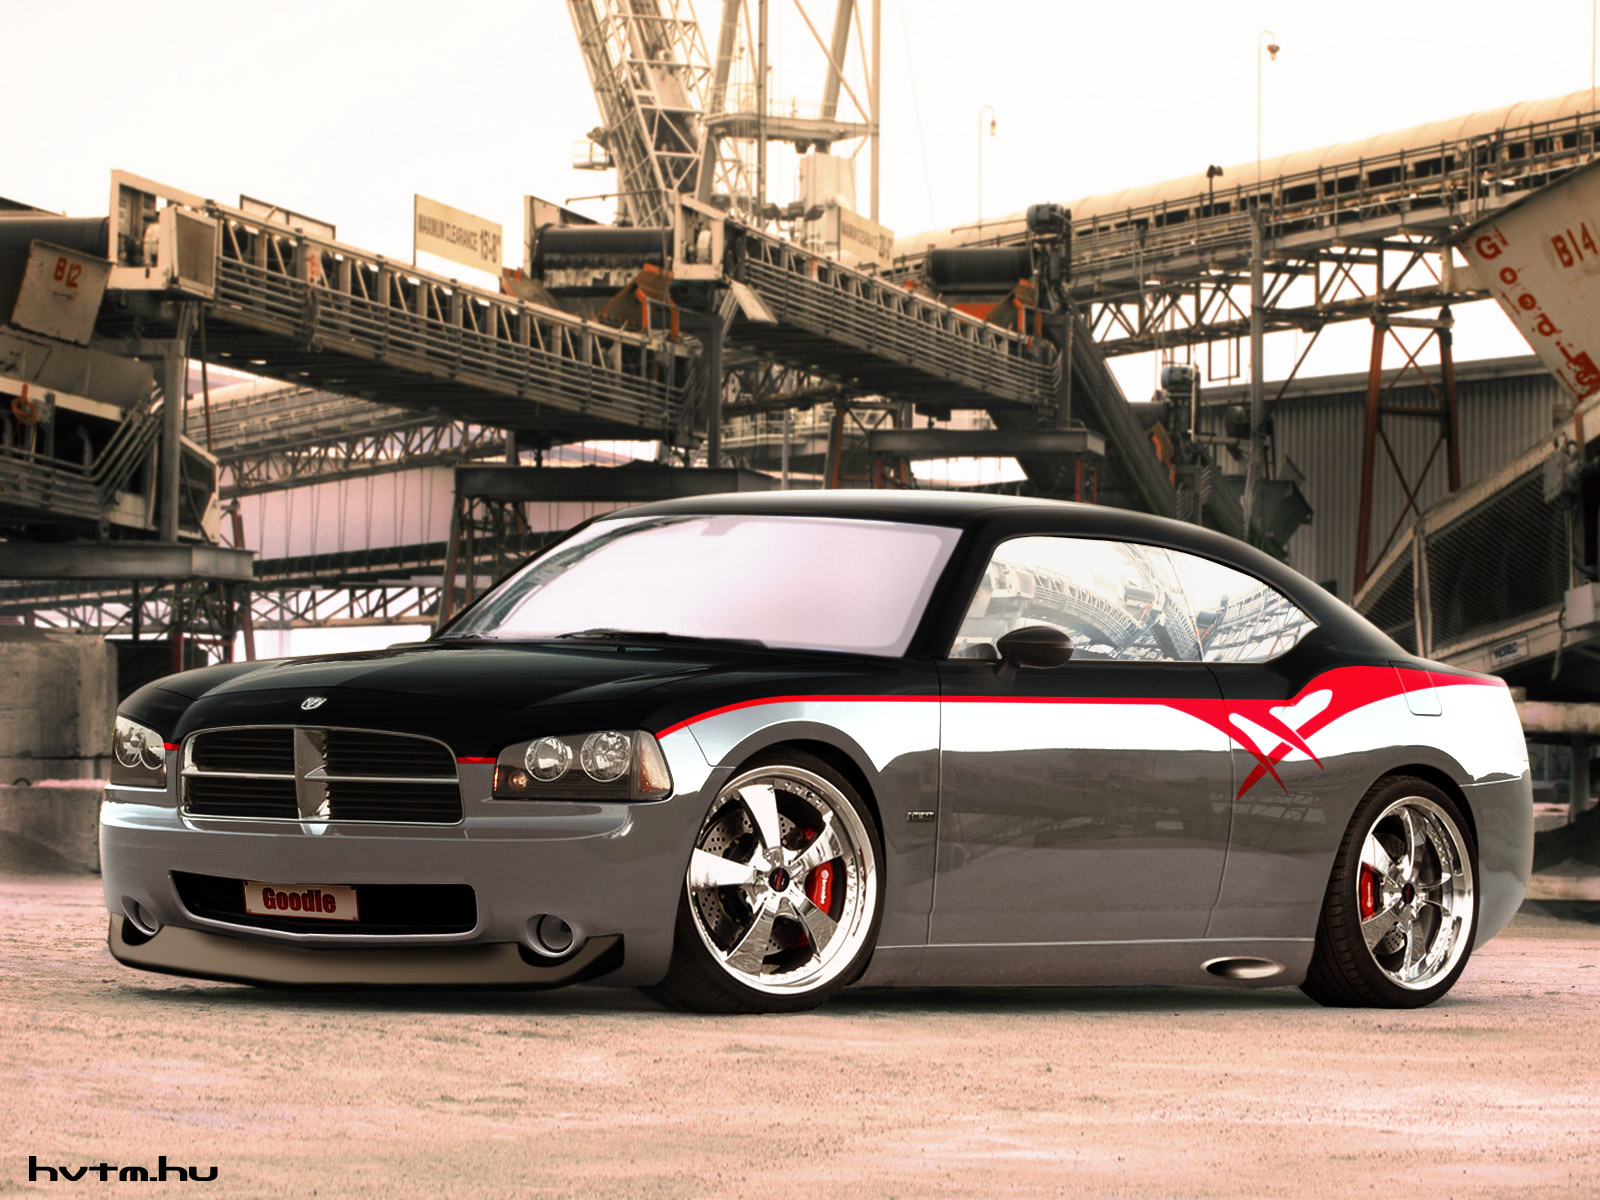 Dodge Charger by ~GoodieDesign on deviantART